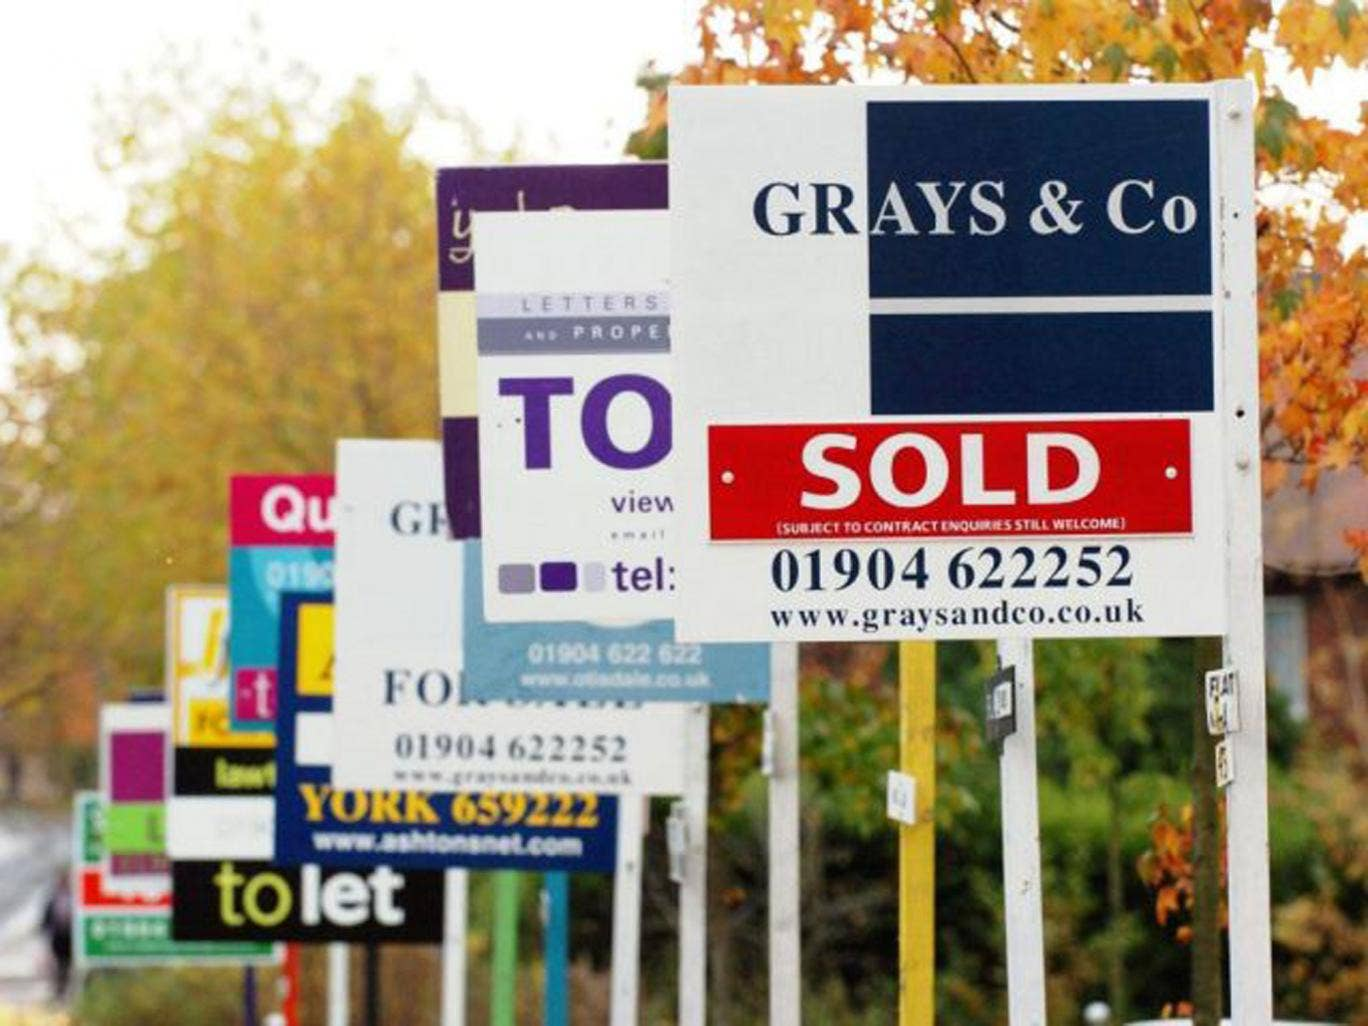 House prices jumped 0.6 per cent month on month, with February marking the 14th month of increases in a row